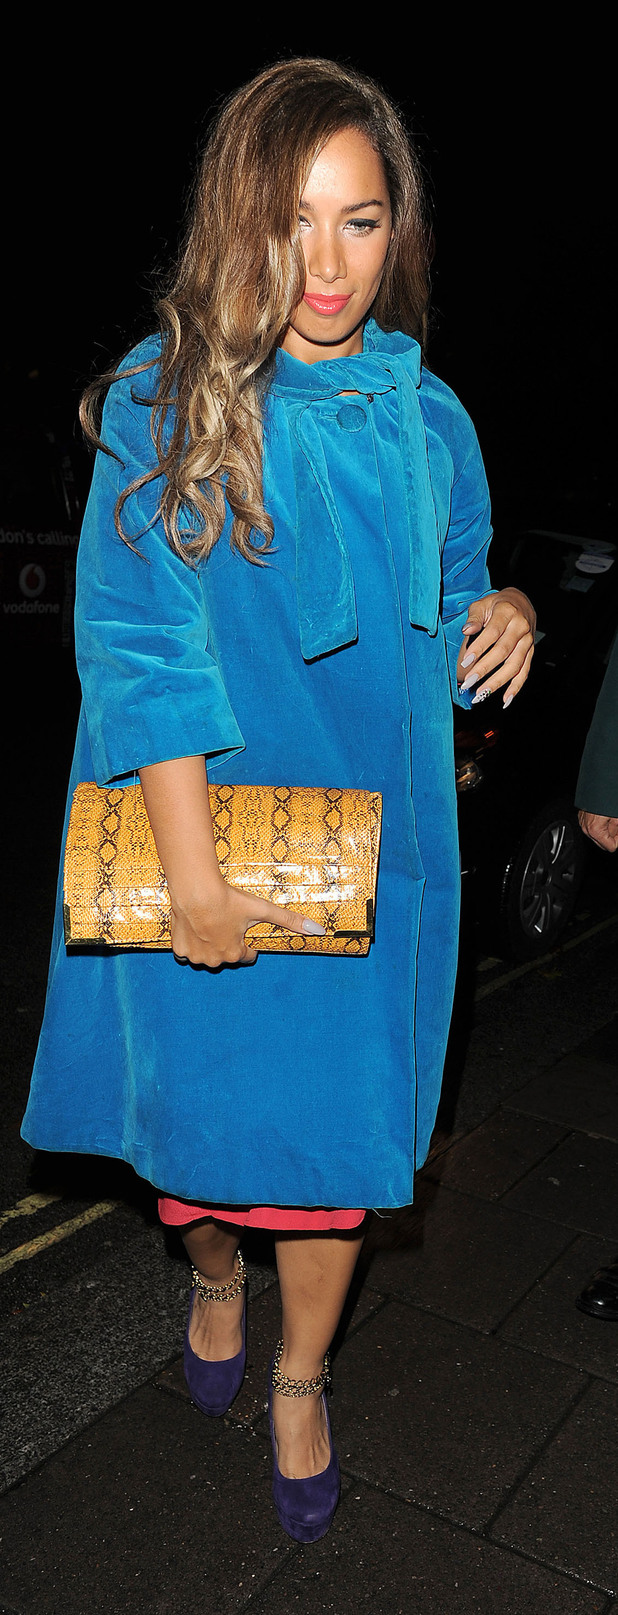 Leona Lewis arriving at Annabel's private members club in Mayfair.